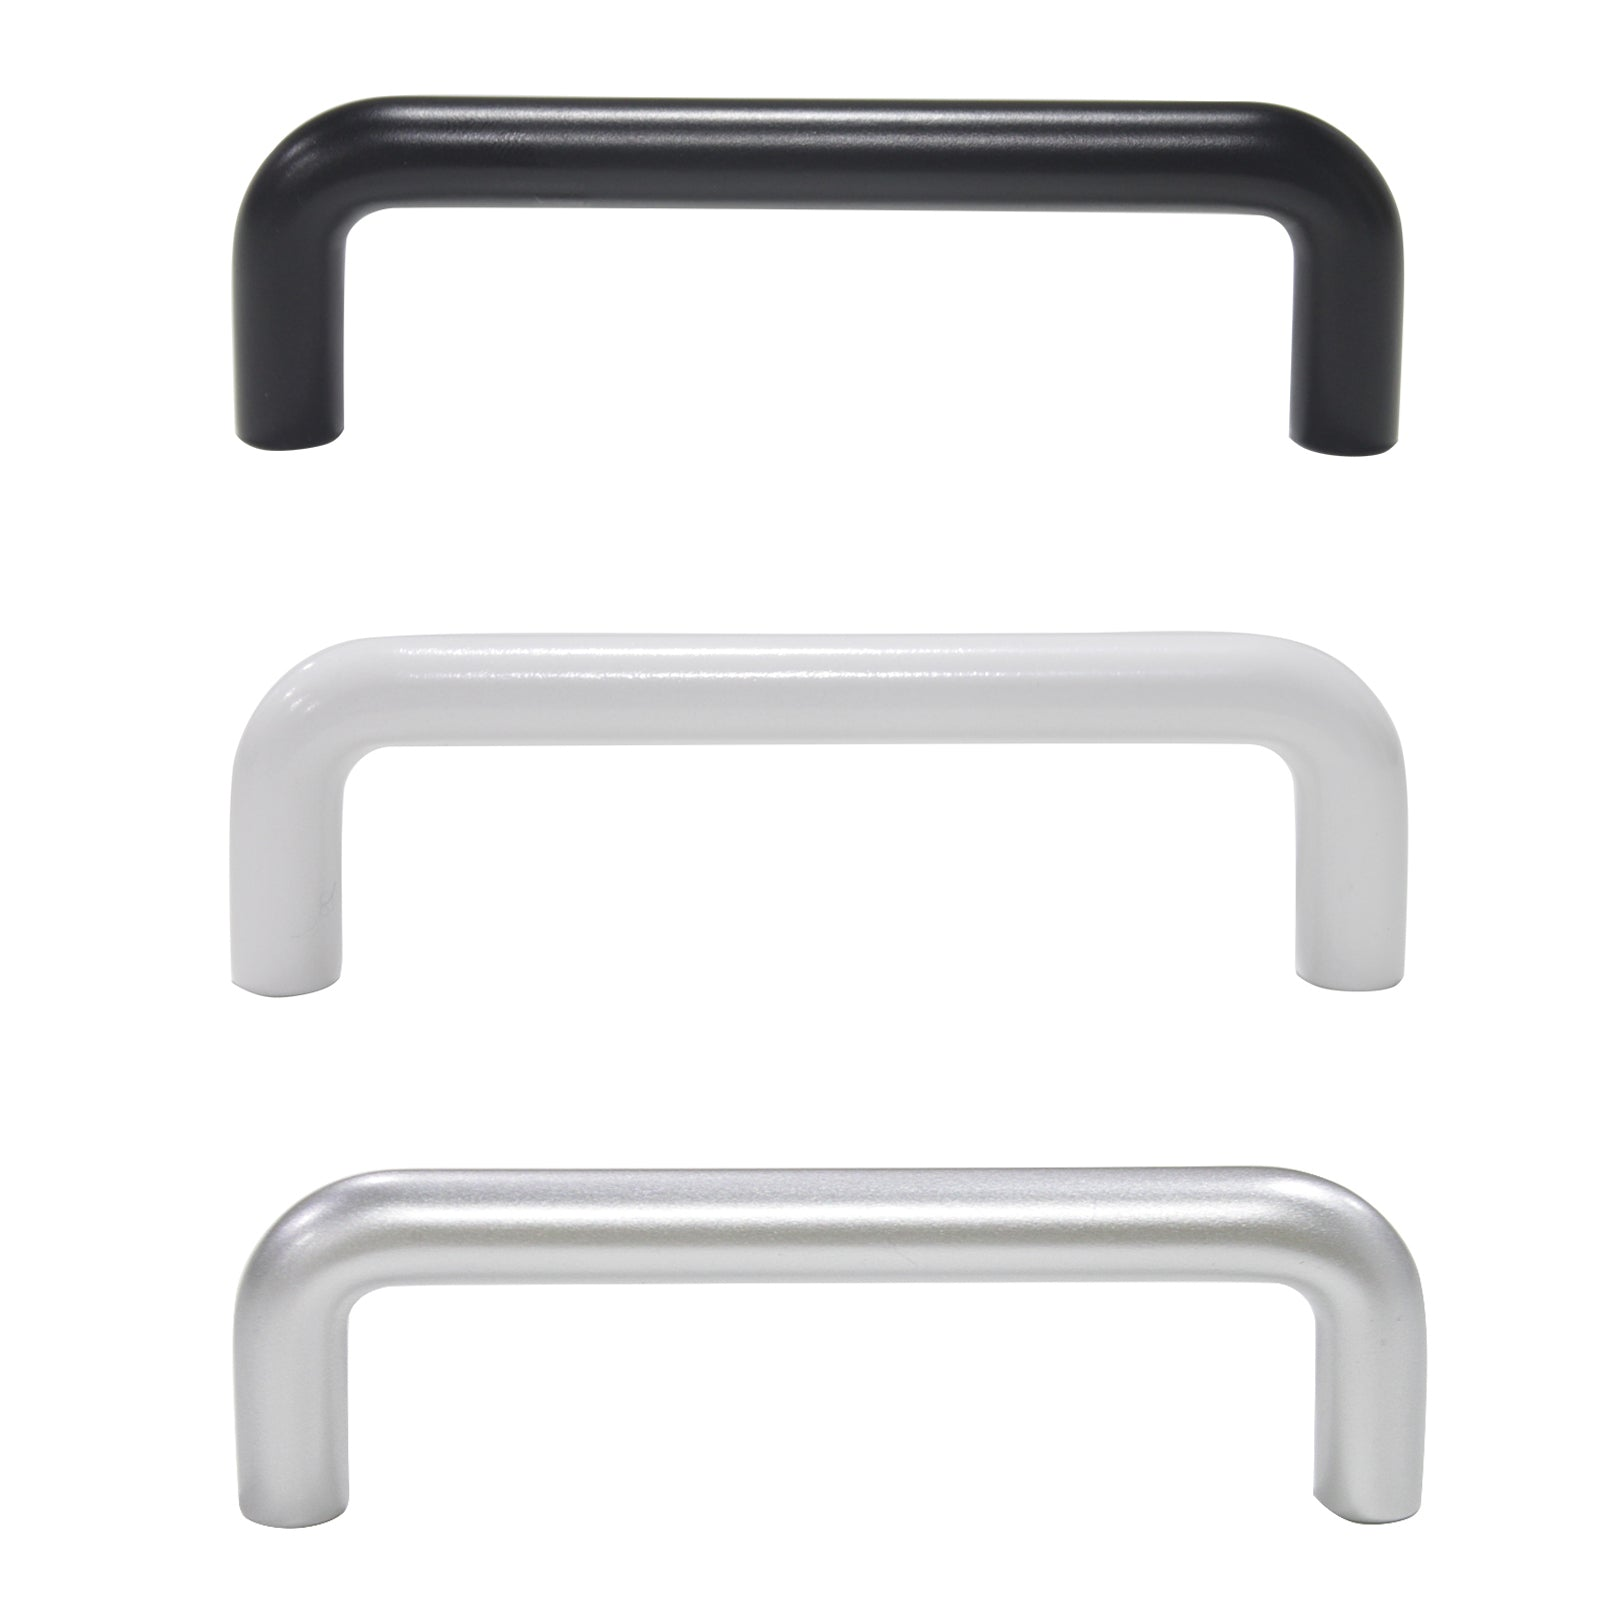 Silver/White/Black Plastic D Bar Handles Kitchen/Bathroom Cabinet Drawer Knobs Cupboard Pulls 96mm - Probrico